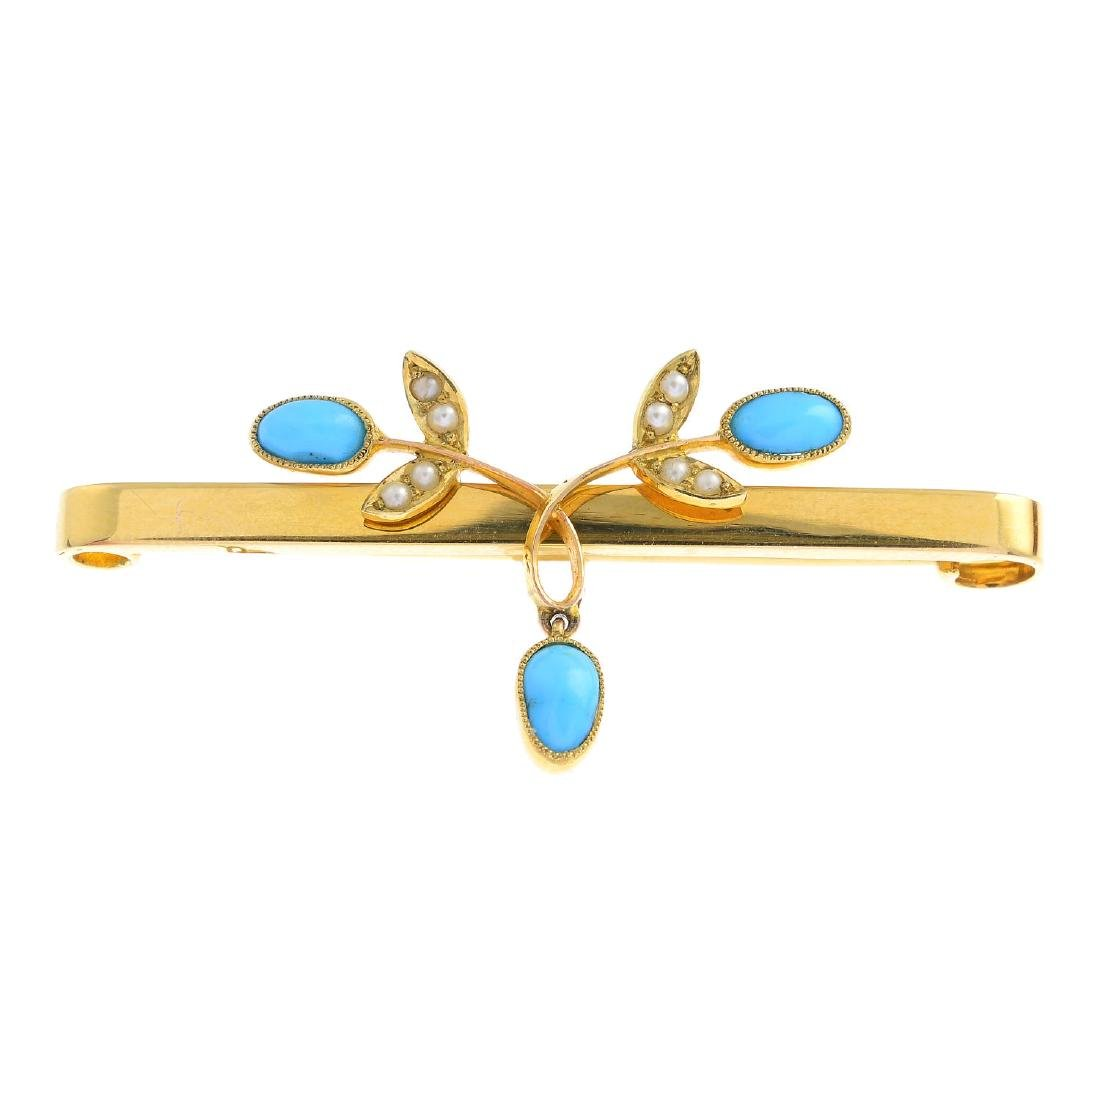 An early 20th century 15ct gold turquoise and split